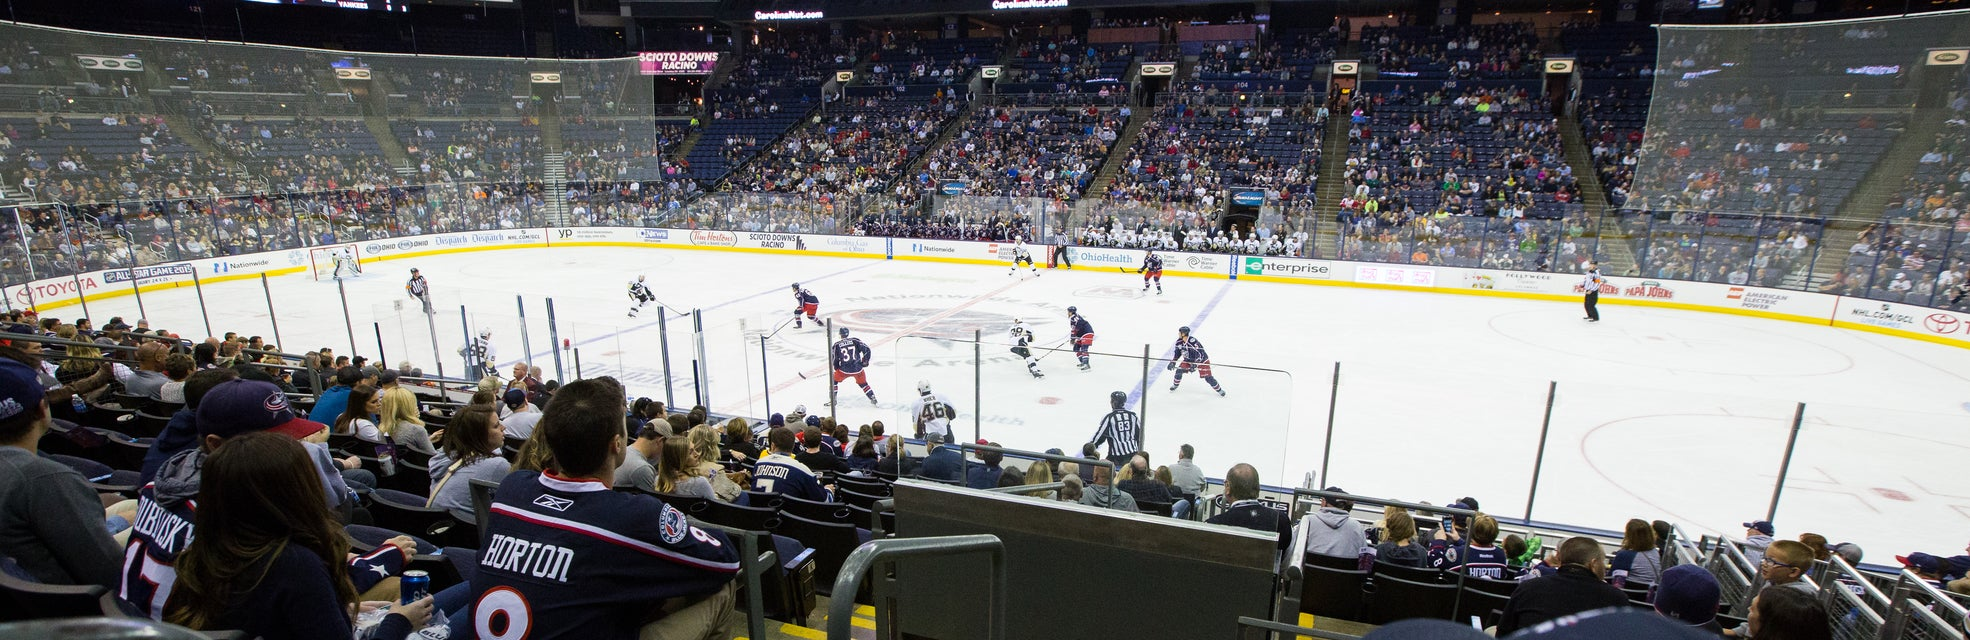 Seat view from Lower Bowl